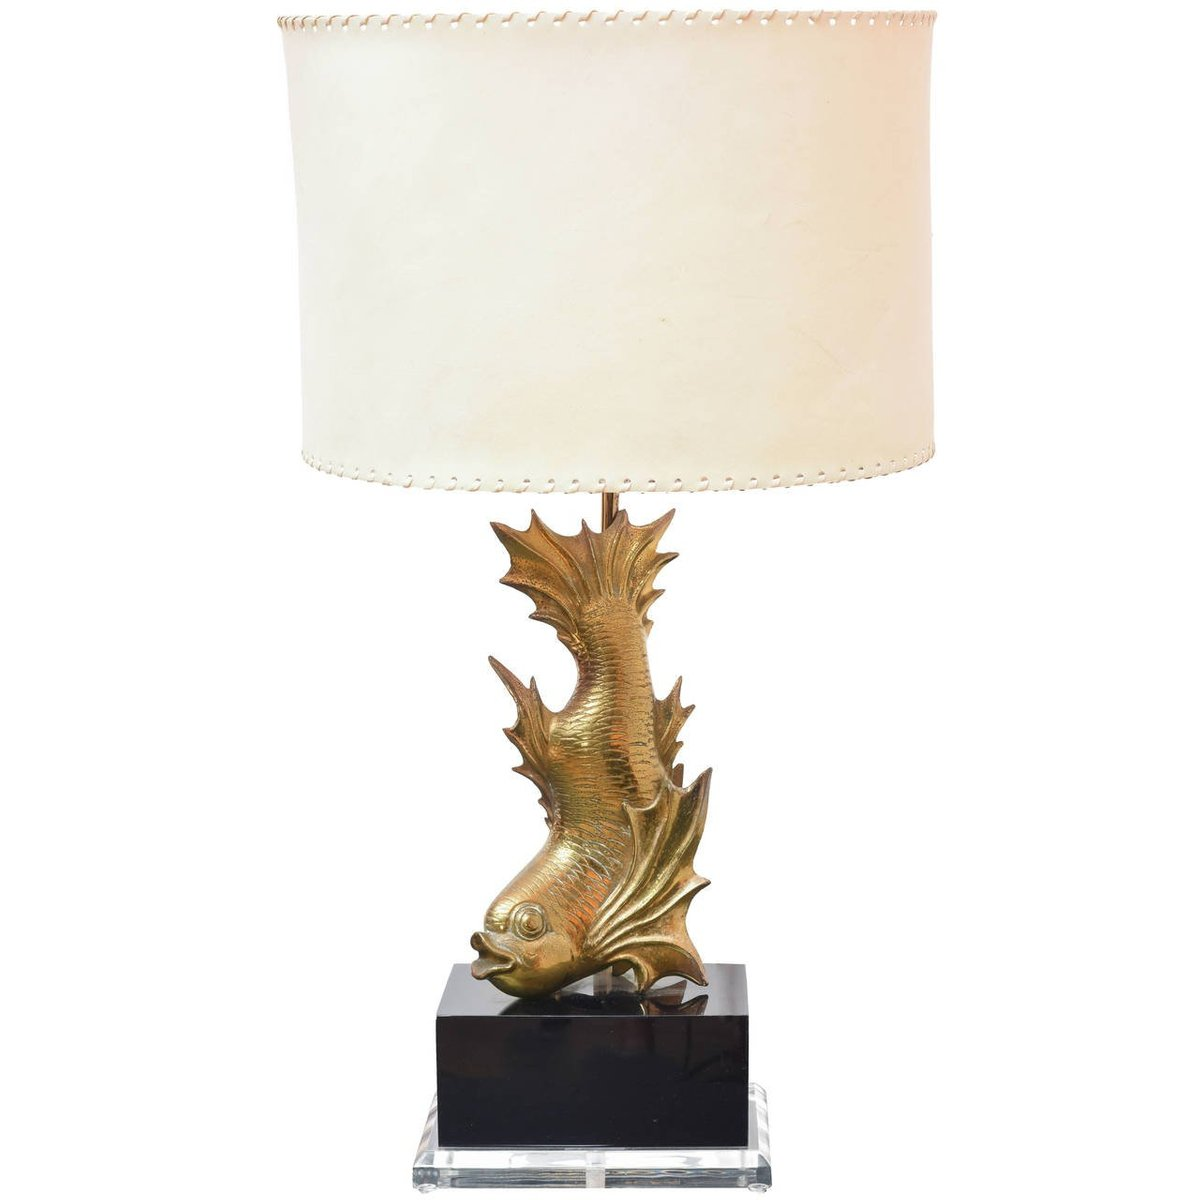 Gilt brass fish table lamp 1970s for sale at pamono gilt brass fish table lamp 1970s aloadofball Image collections